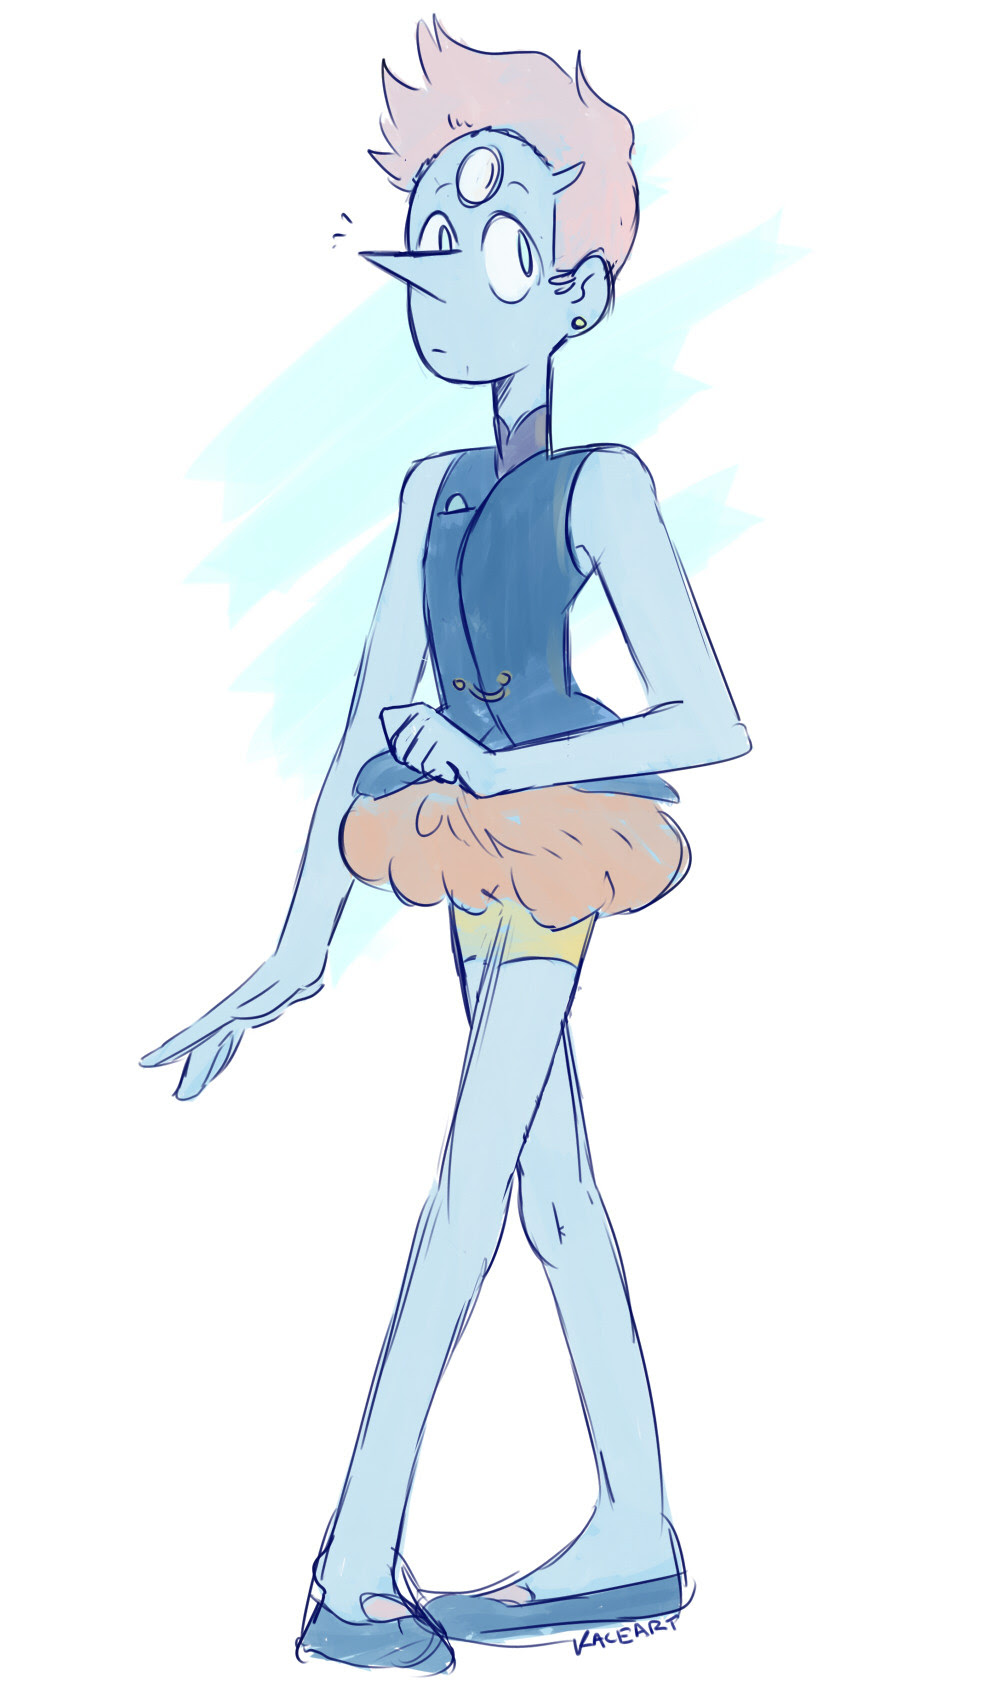 had a tiny bit of time to draw something, so here's a pilot pearl :P